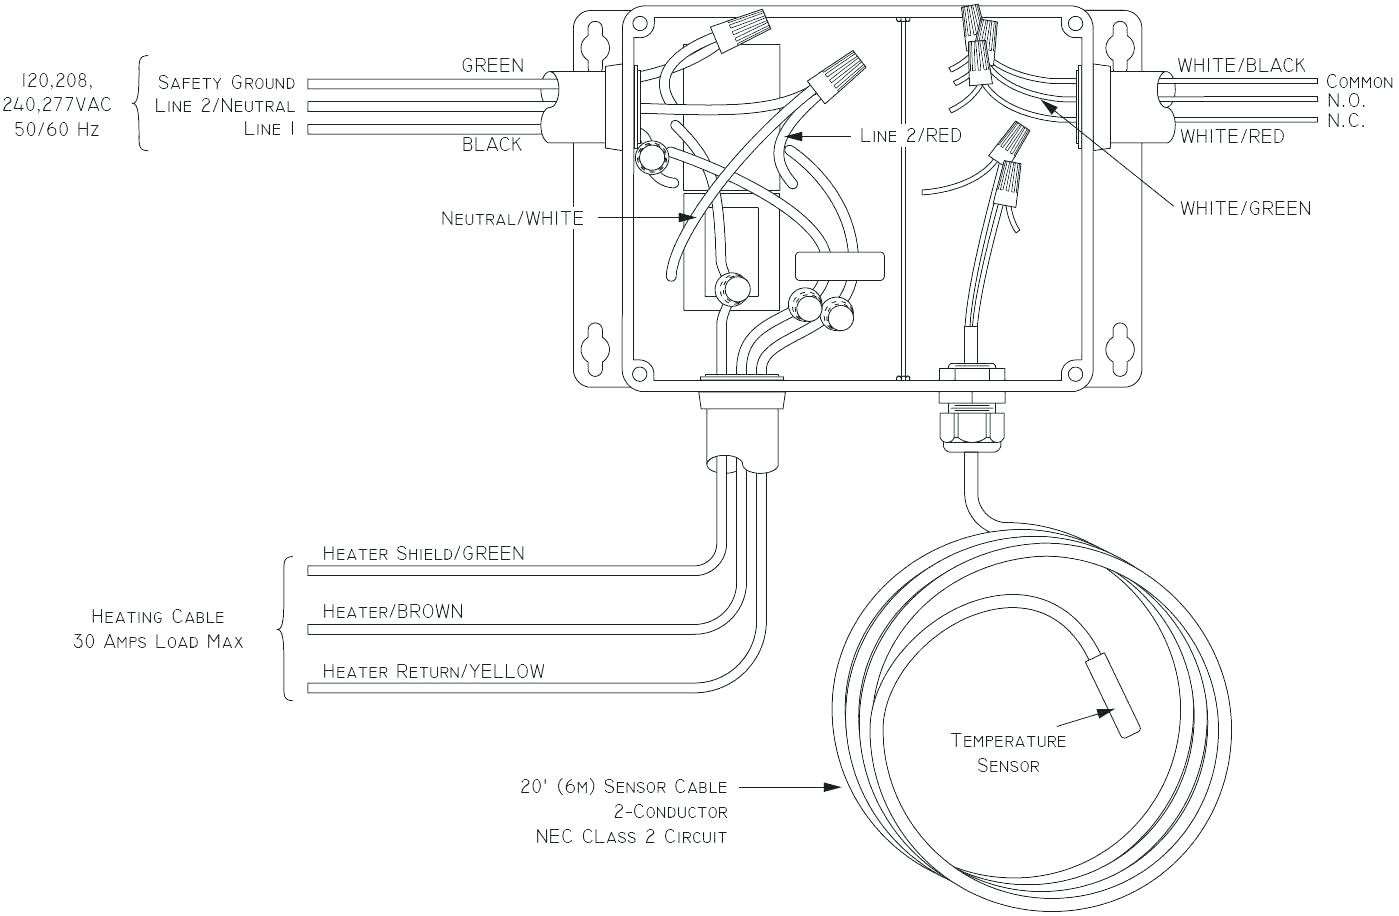 wiring diagram for nest thermostat e 1999 toyota 4runner installing two baseboard heaters to one unique